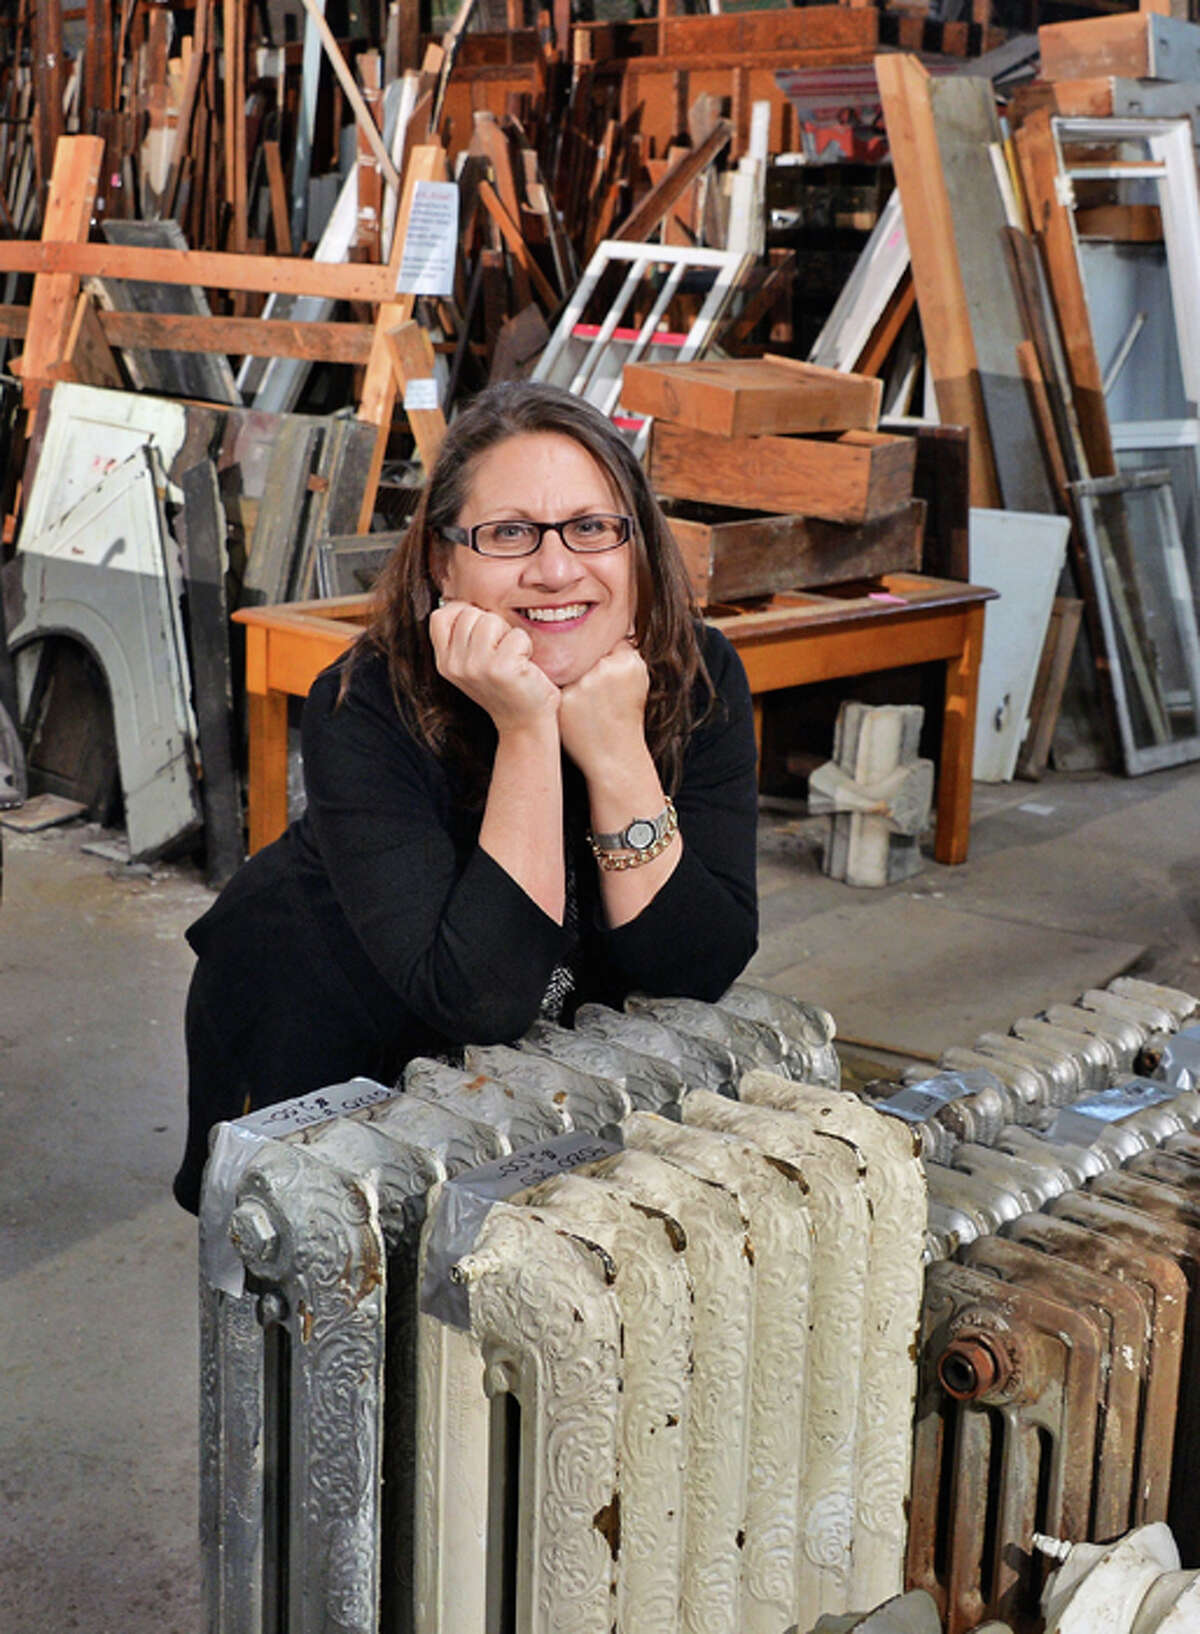 Executive director Susan Holland with cast iron steam and hot water radiators salvaged from the park South demolition now in Historic Albany Foundation's warehouse Tuesday Jan. 13, 2015, in Albany, NY.